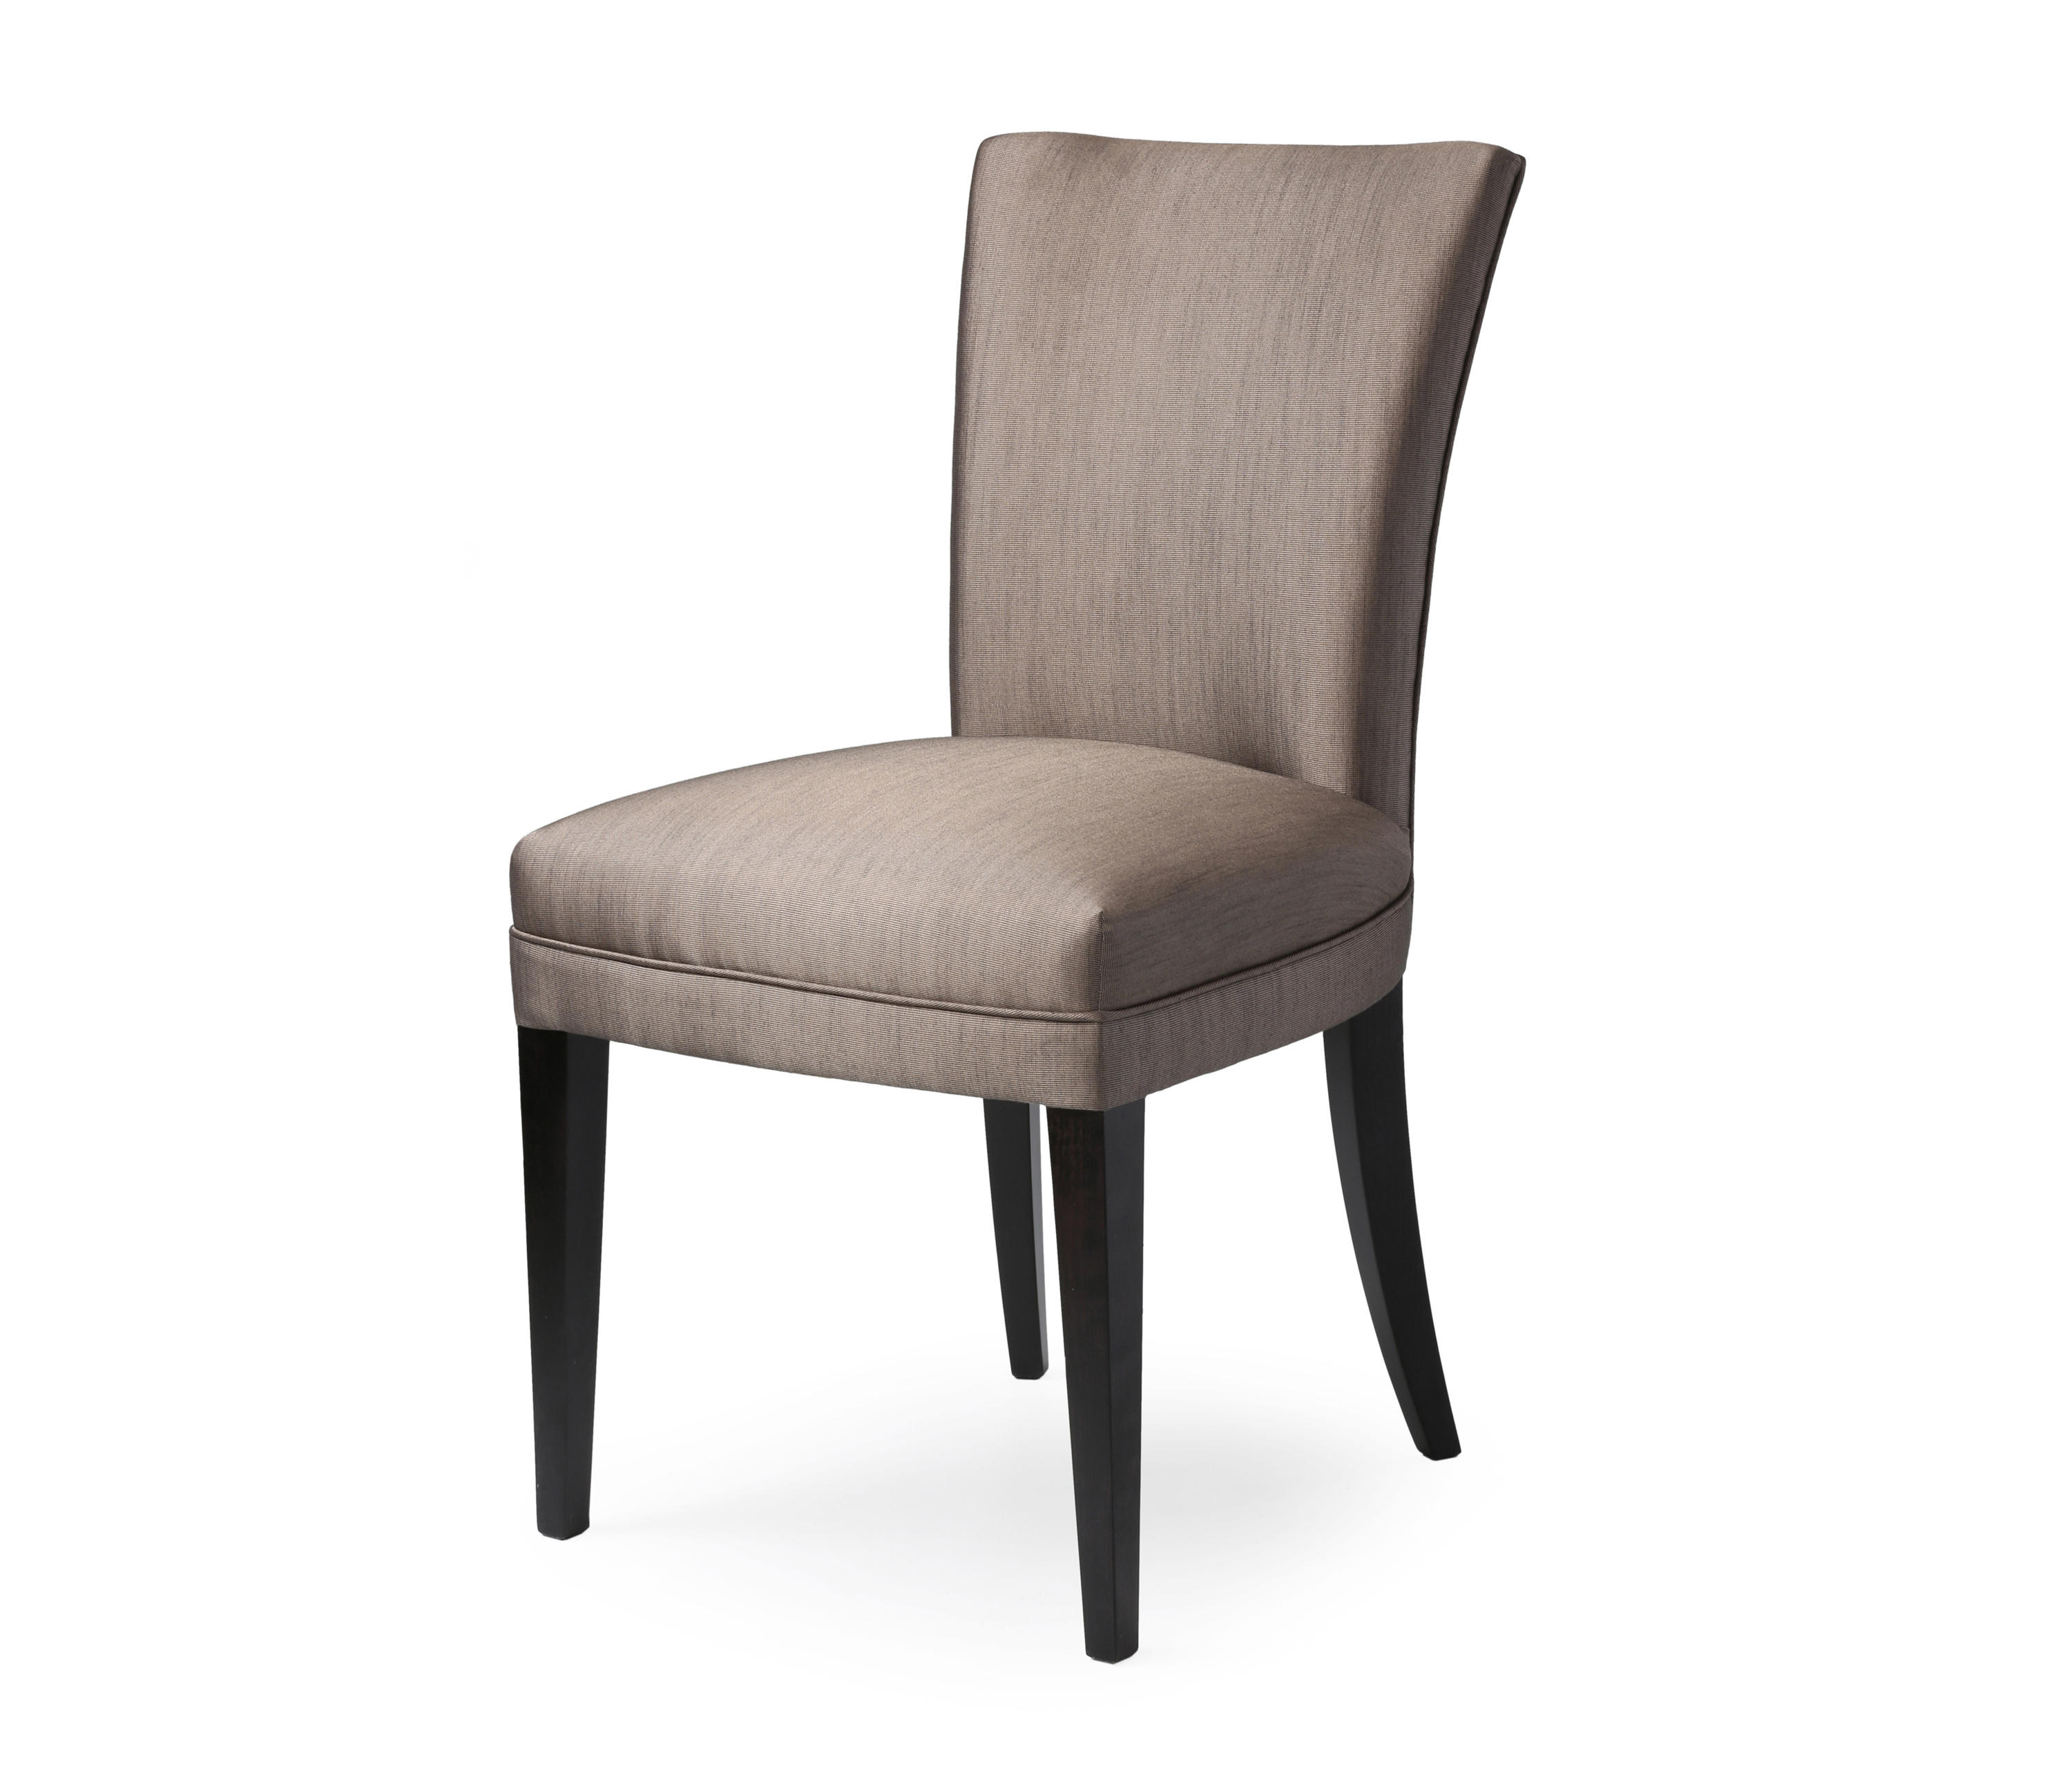 Restaurant Chairs Paris Dining Chair Chairs From The Sofa And Chair Company